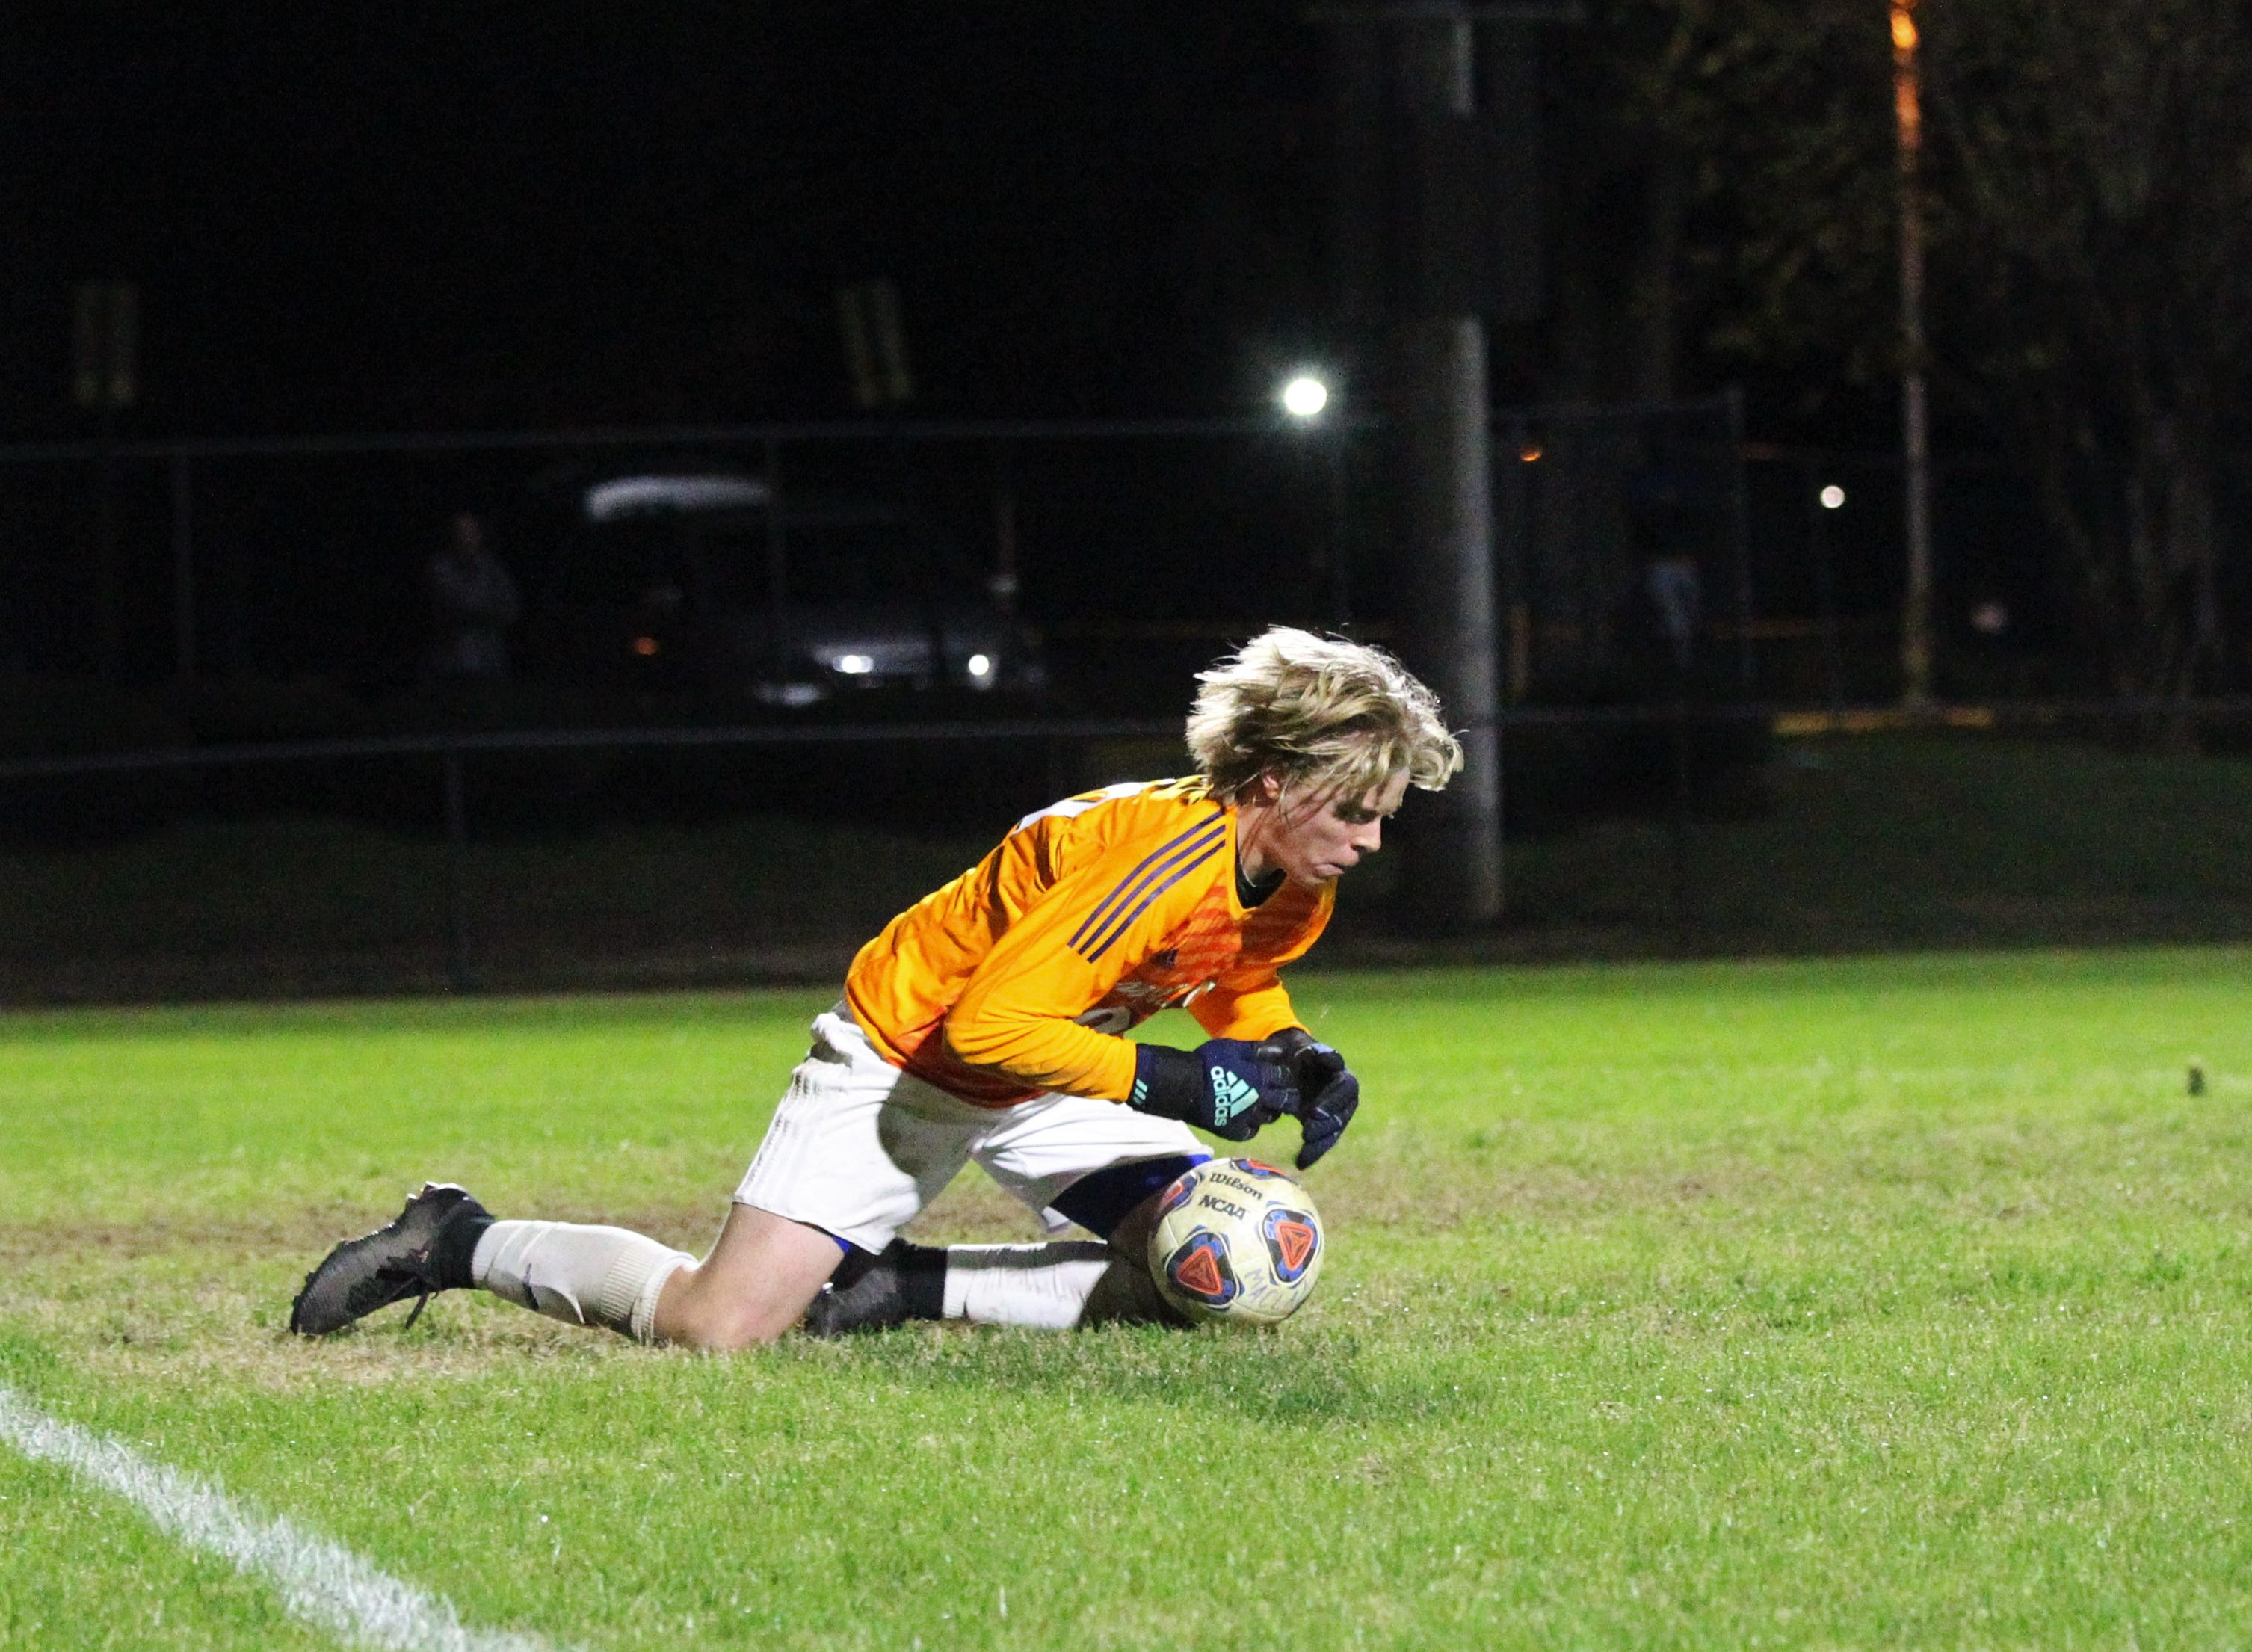 Maclay keeper Hudson Williams comes up with a save, but Leon's boys soccer team beat Maclay 3-1 on Jan. 22, 2019.